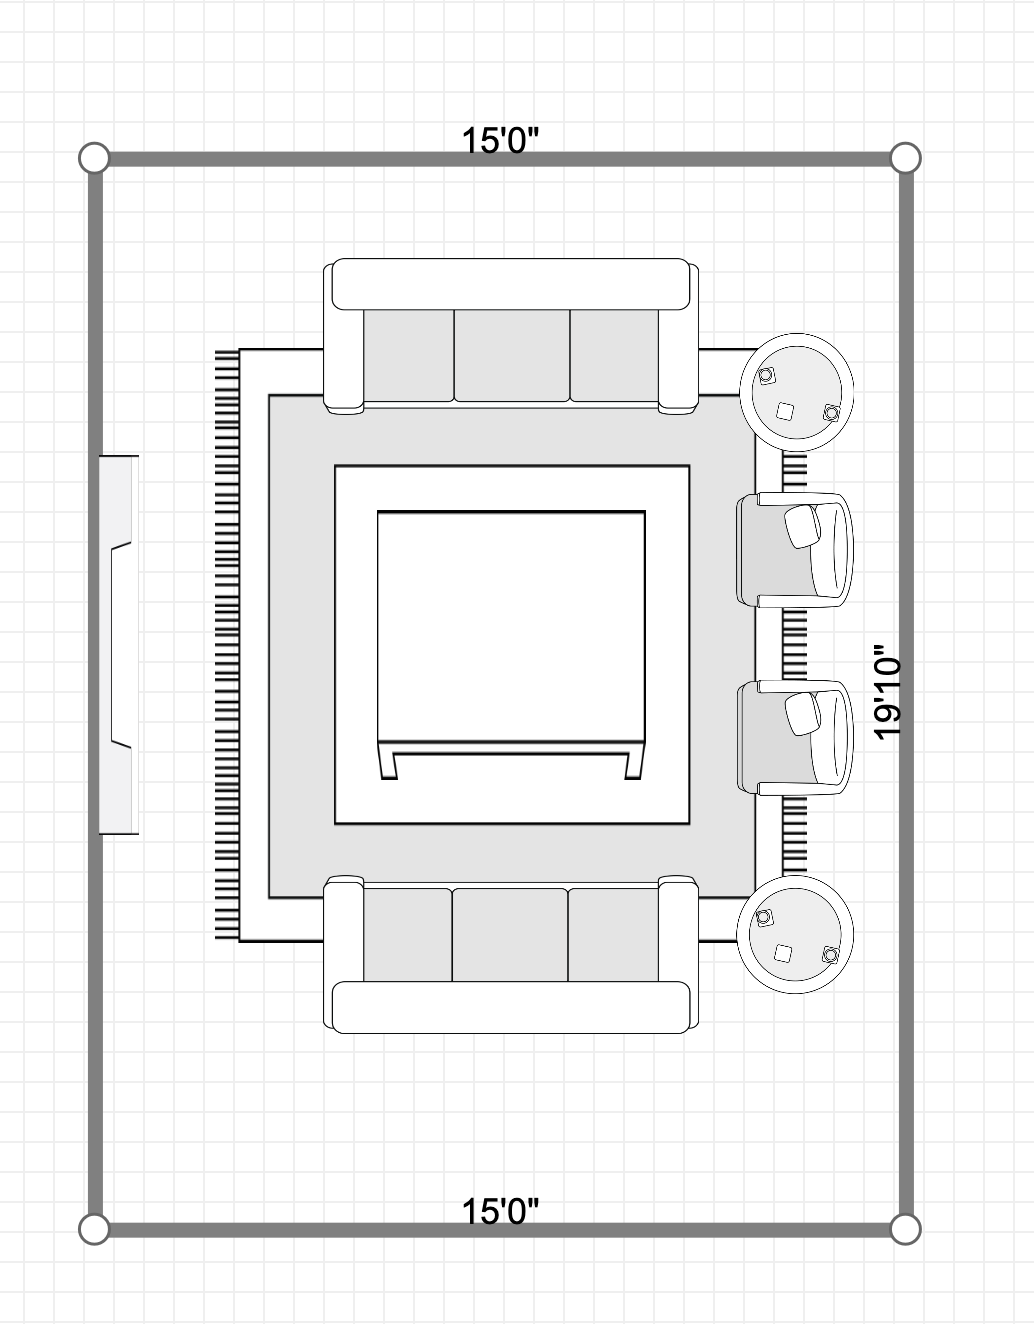 Option 1 11x11 Lr Layout W 2 7 Sofas And 2 Catbirds And 5x5